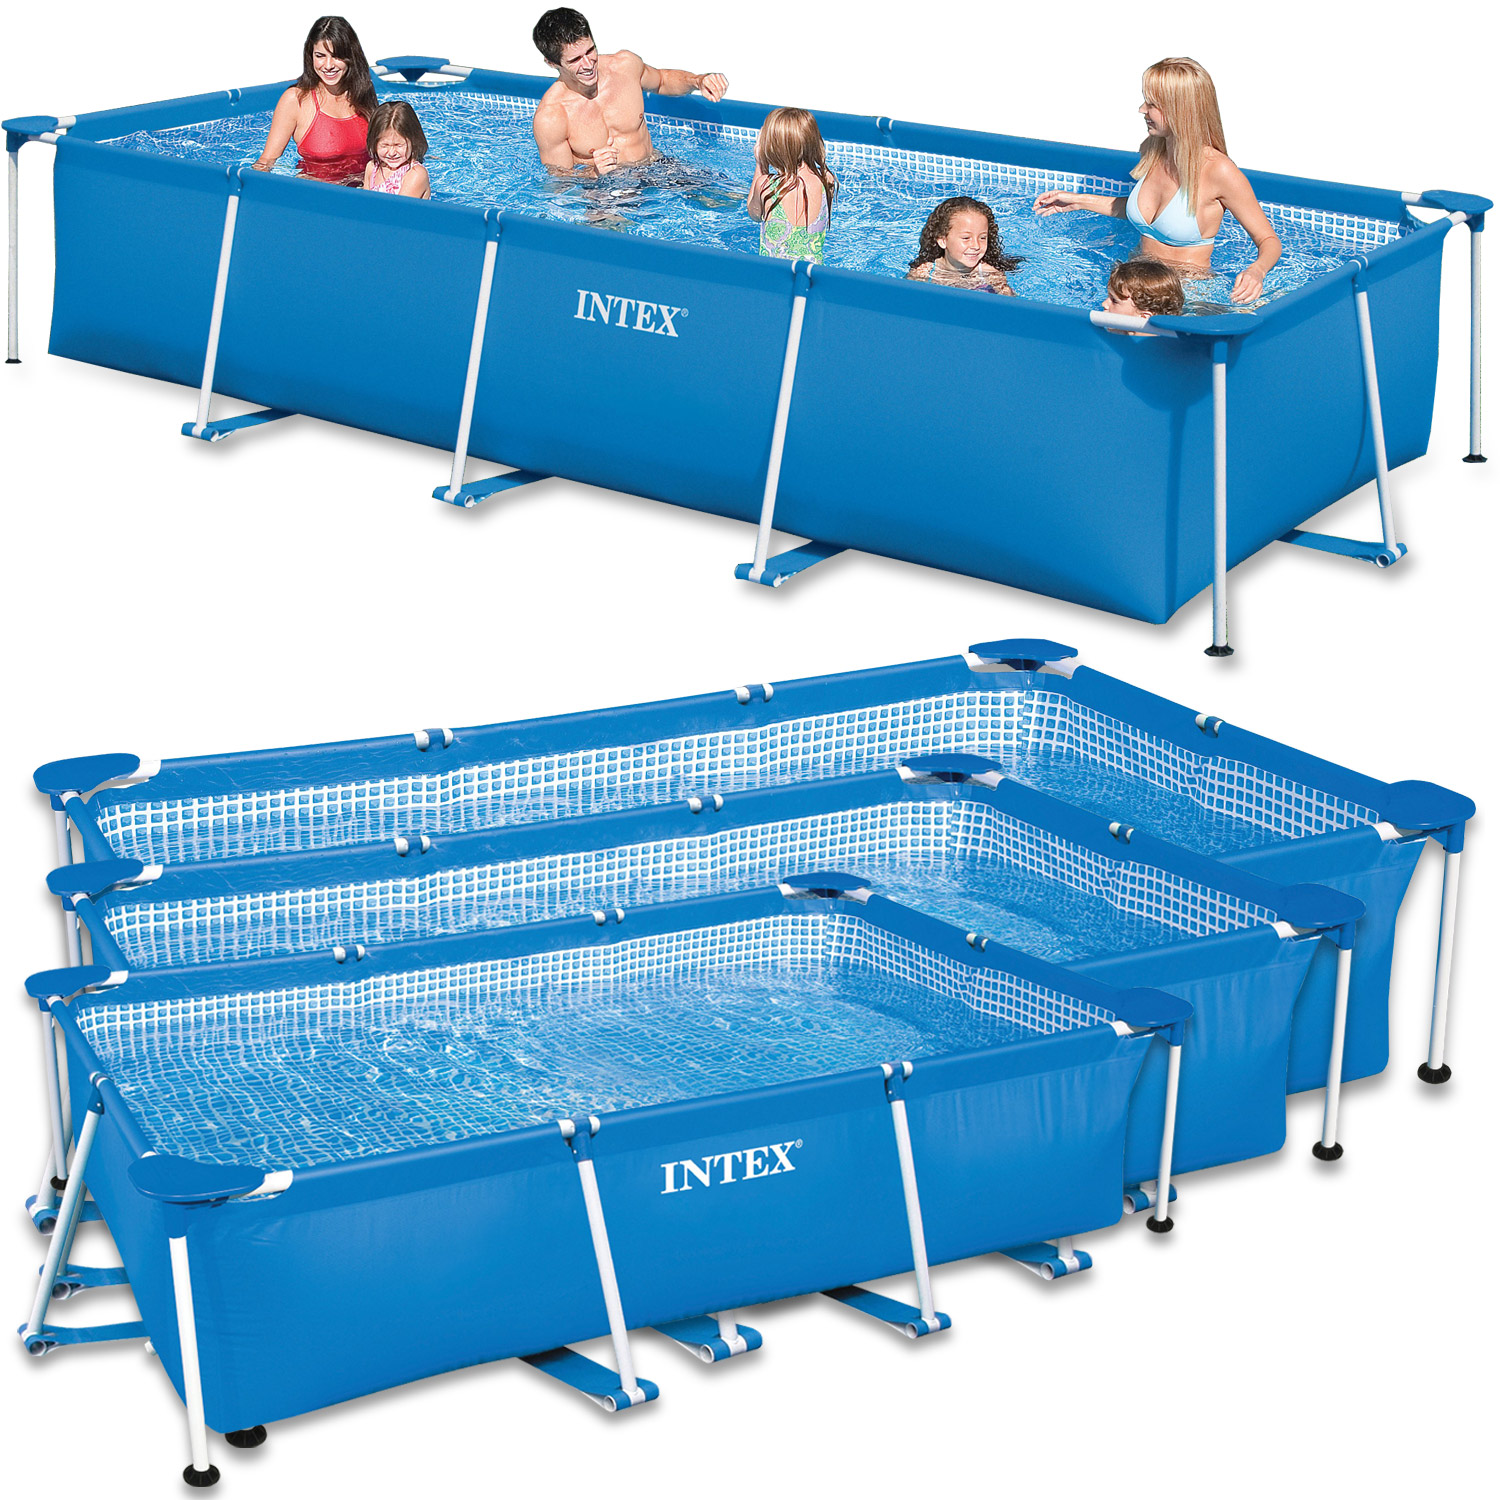 Intex family schwimmbad swimming pool familienpool for Garten pool intex